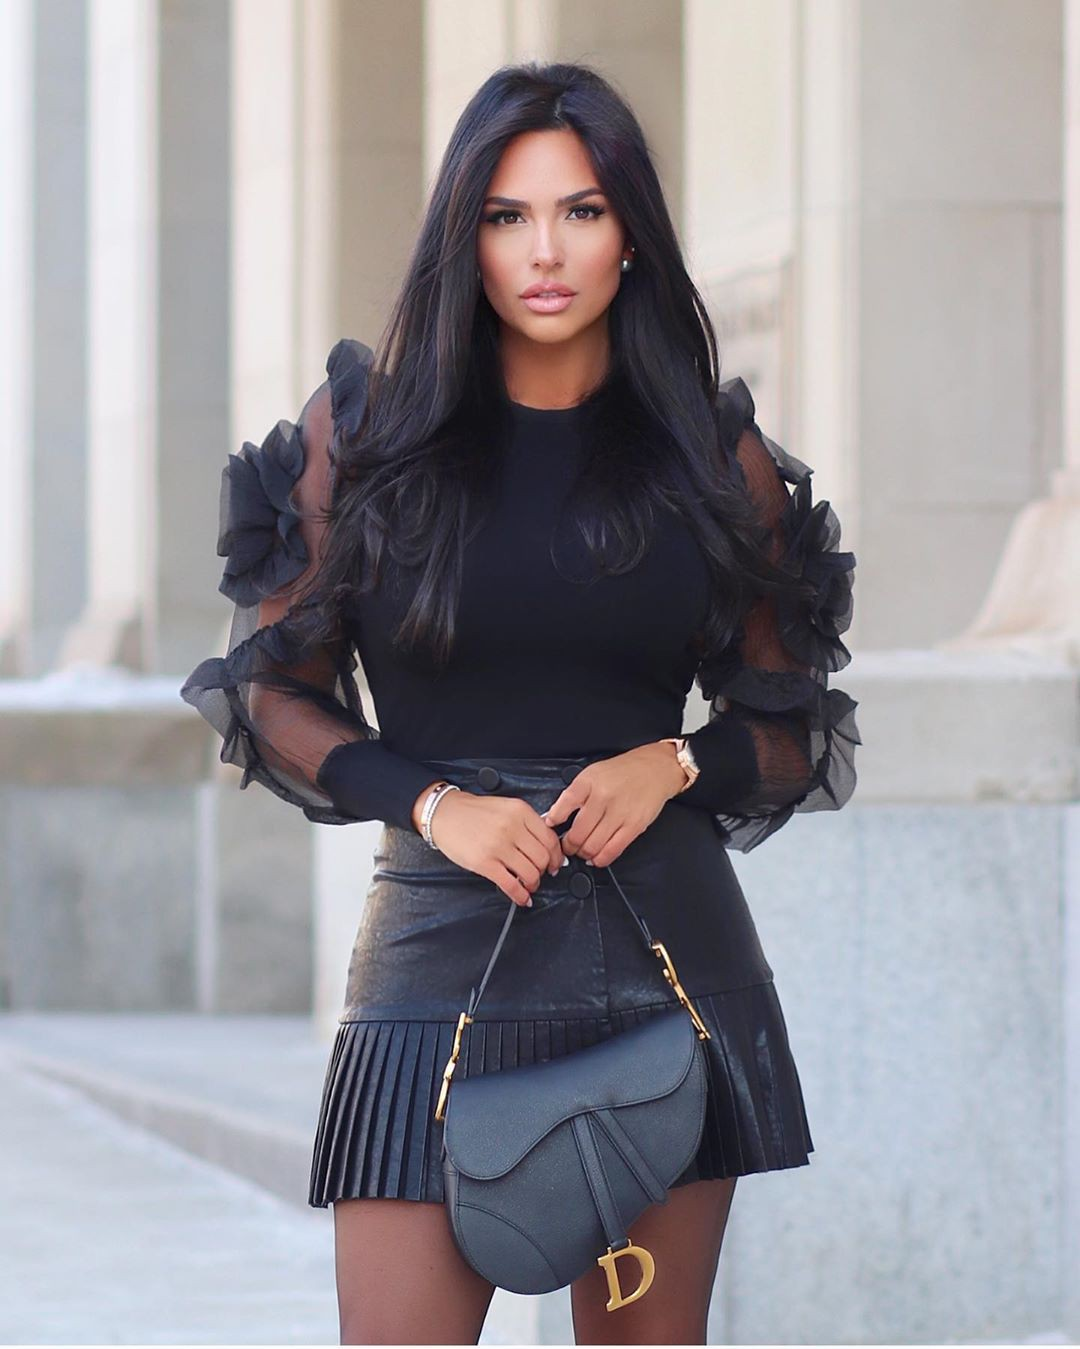 black colour outfit, you must try with shorts, smooth legs, outfit designs